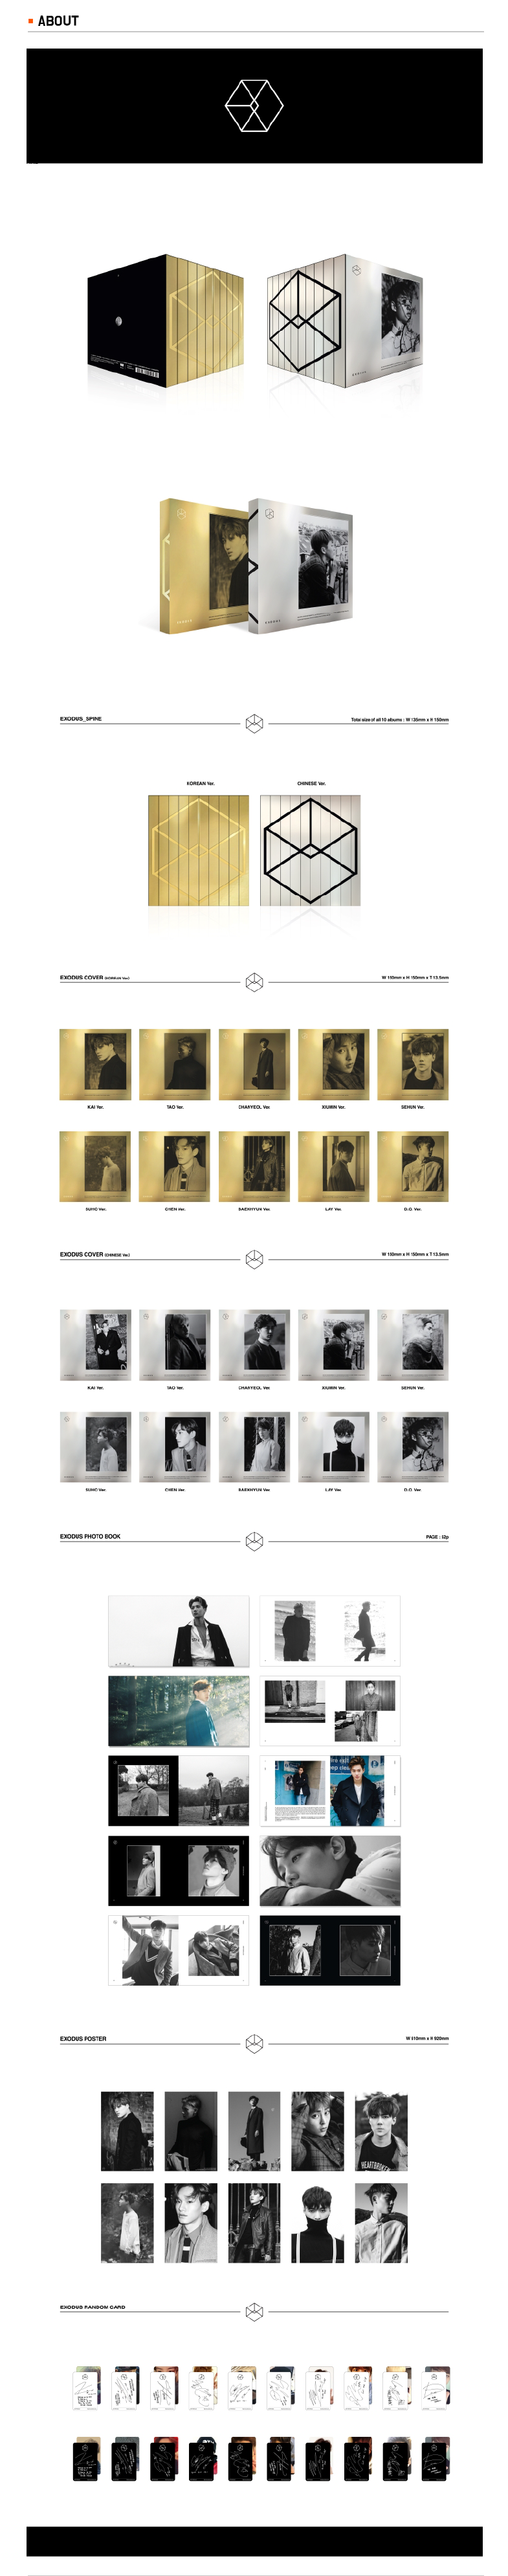 EXO - 2nd Full Album EXODUS Korean -Chinese Ver. Infographic